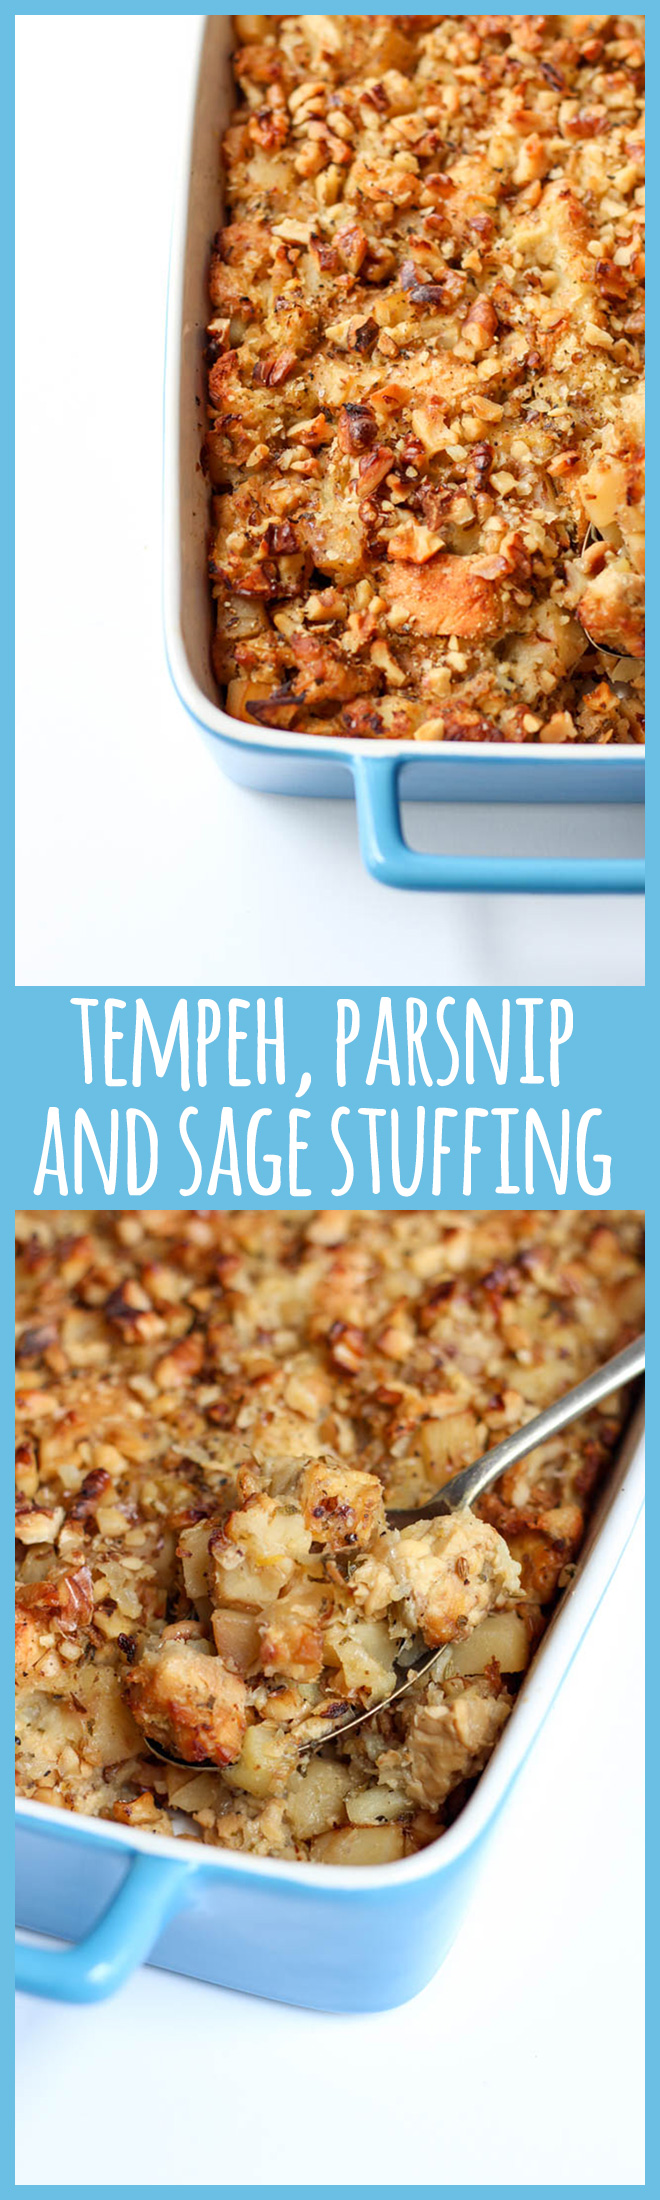 This delicious vegan stuffing features tempeh, parsnip, apple, sage and walnuts. It's packed with flavour and perfect to feed a crowd at Christmas or your next potluck.